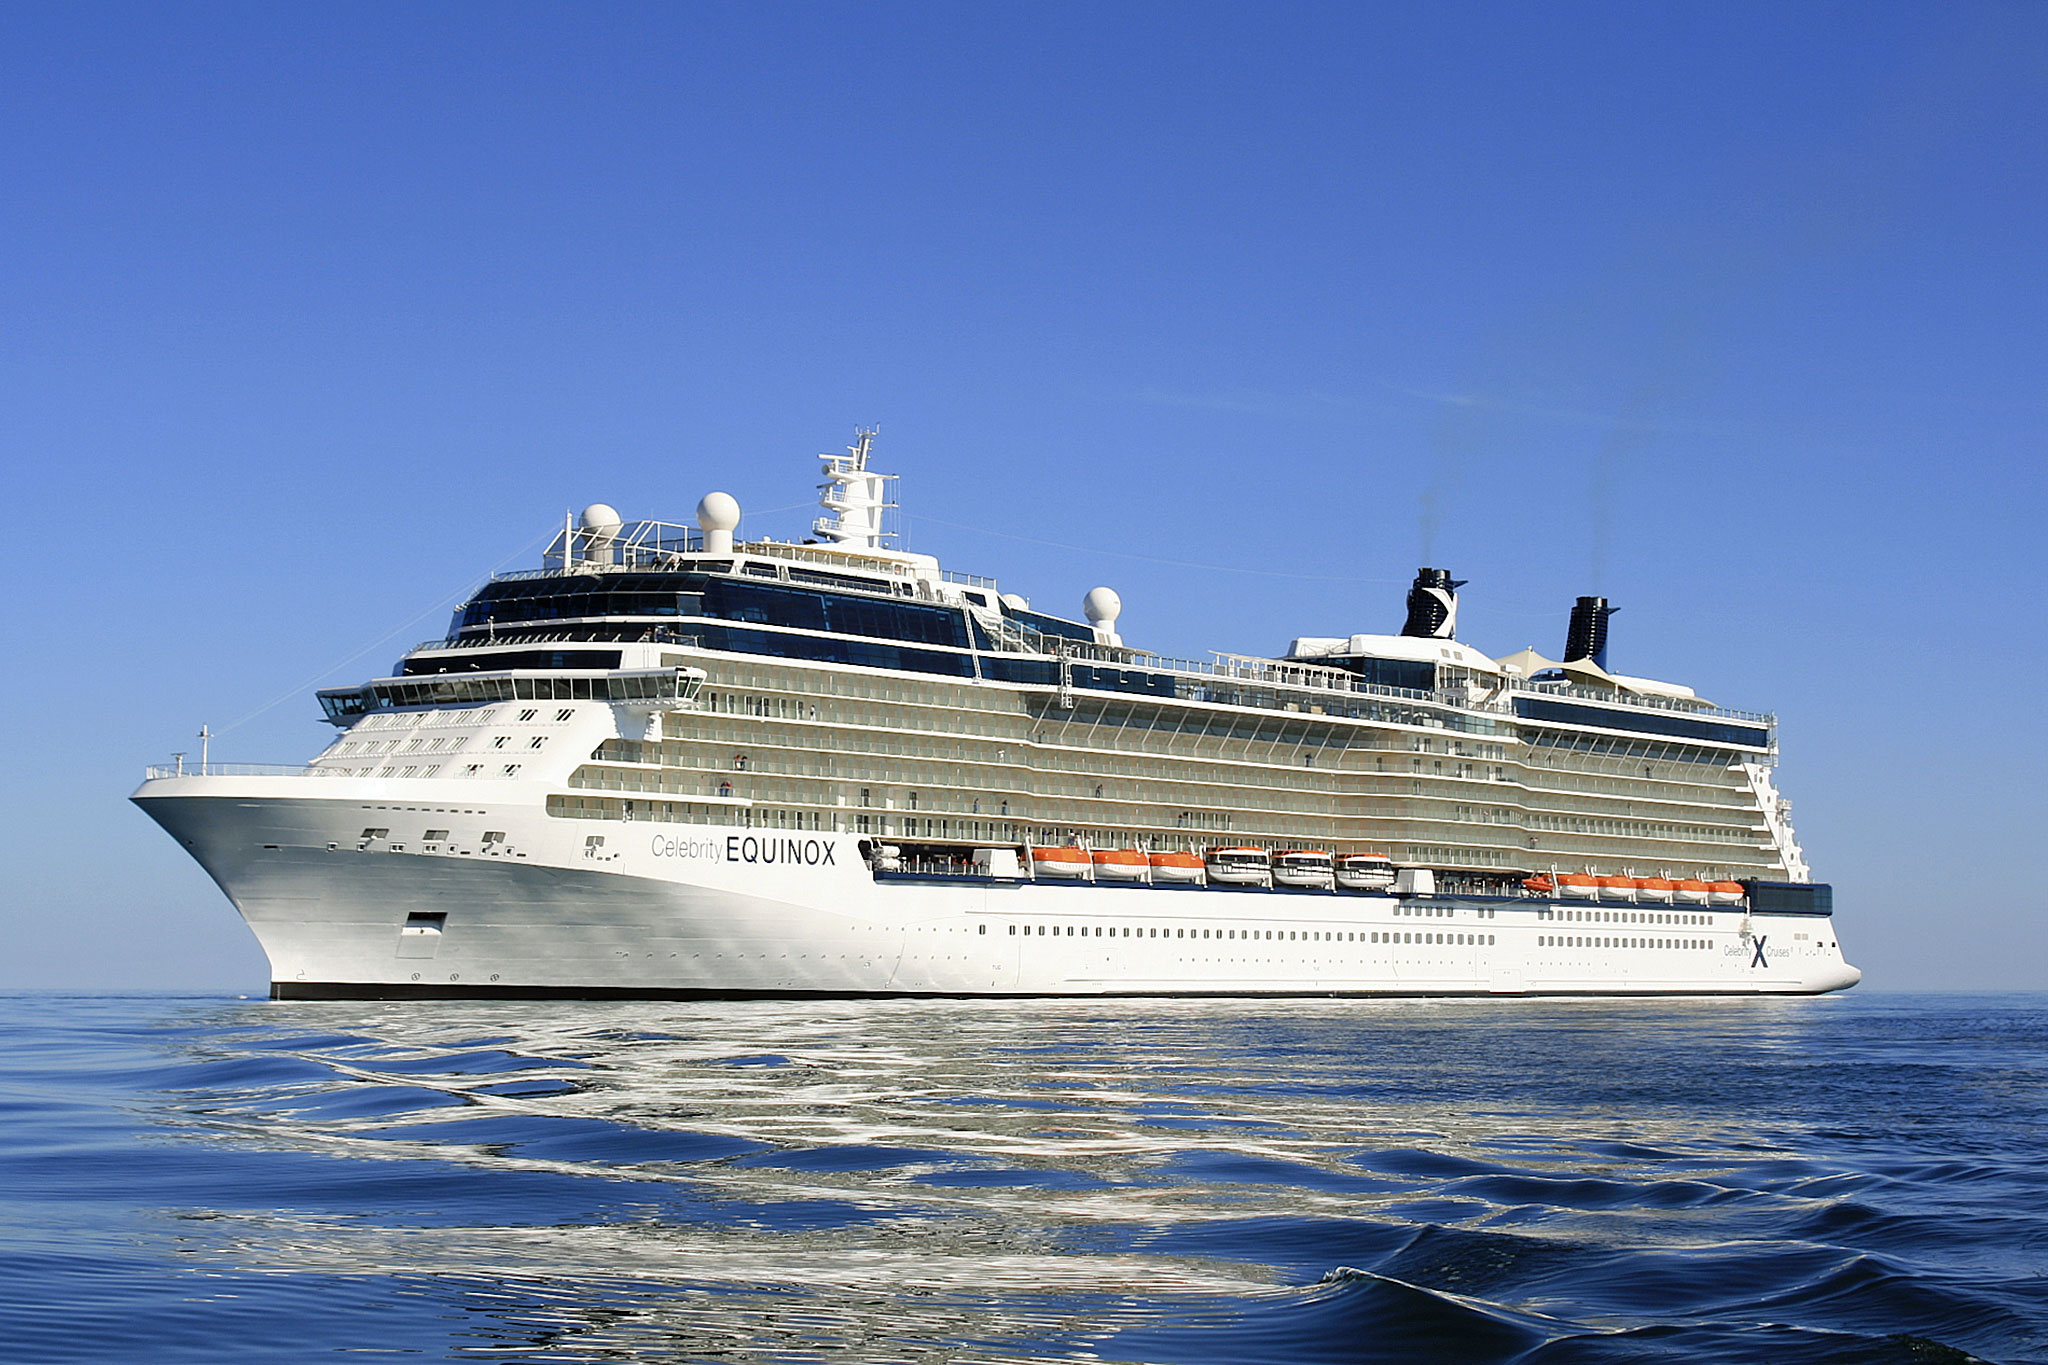 22 Pictures of the Amazing Celebrity Equinox